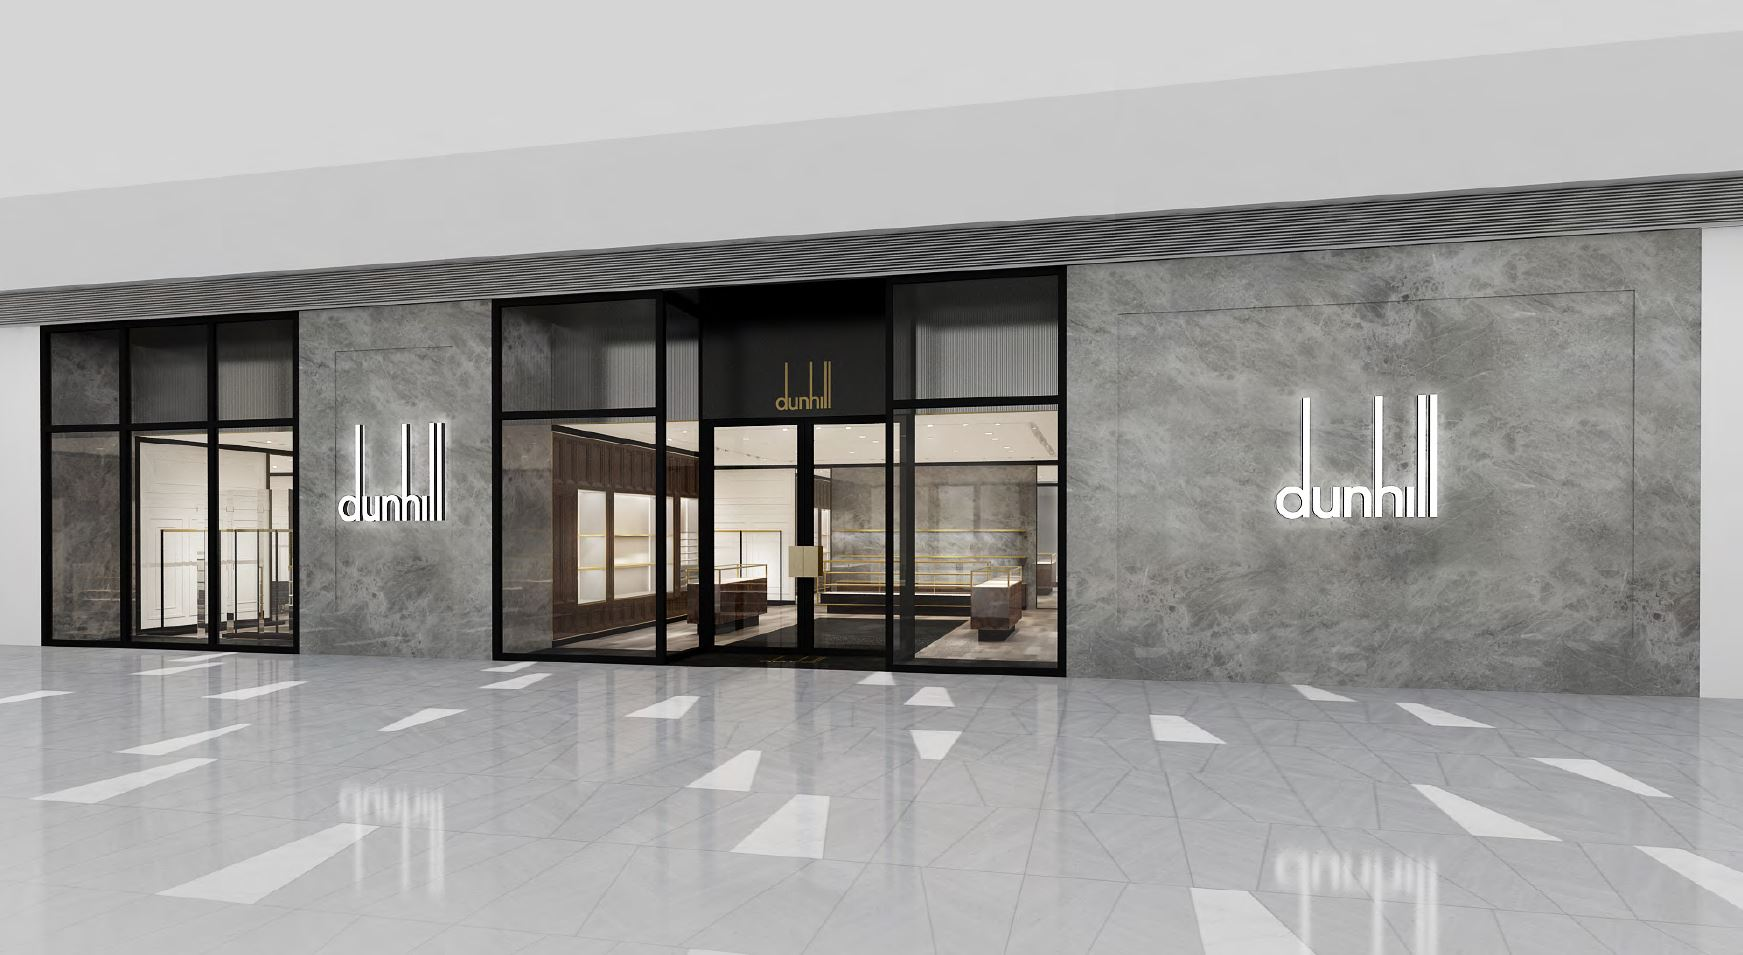 A rendering of the Dunhill store at Hudson Yards.